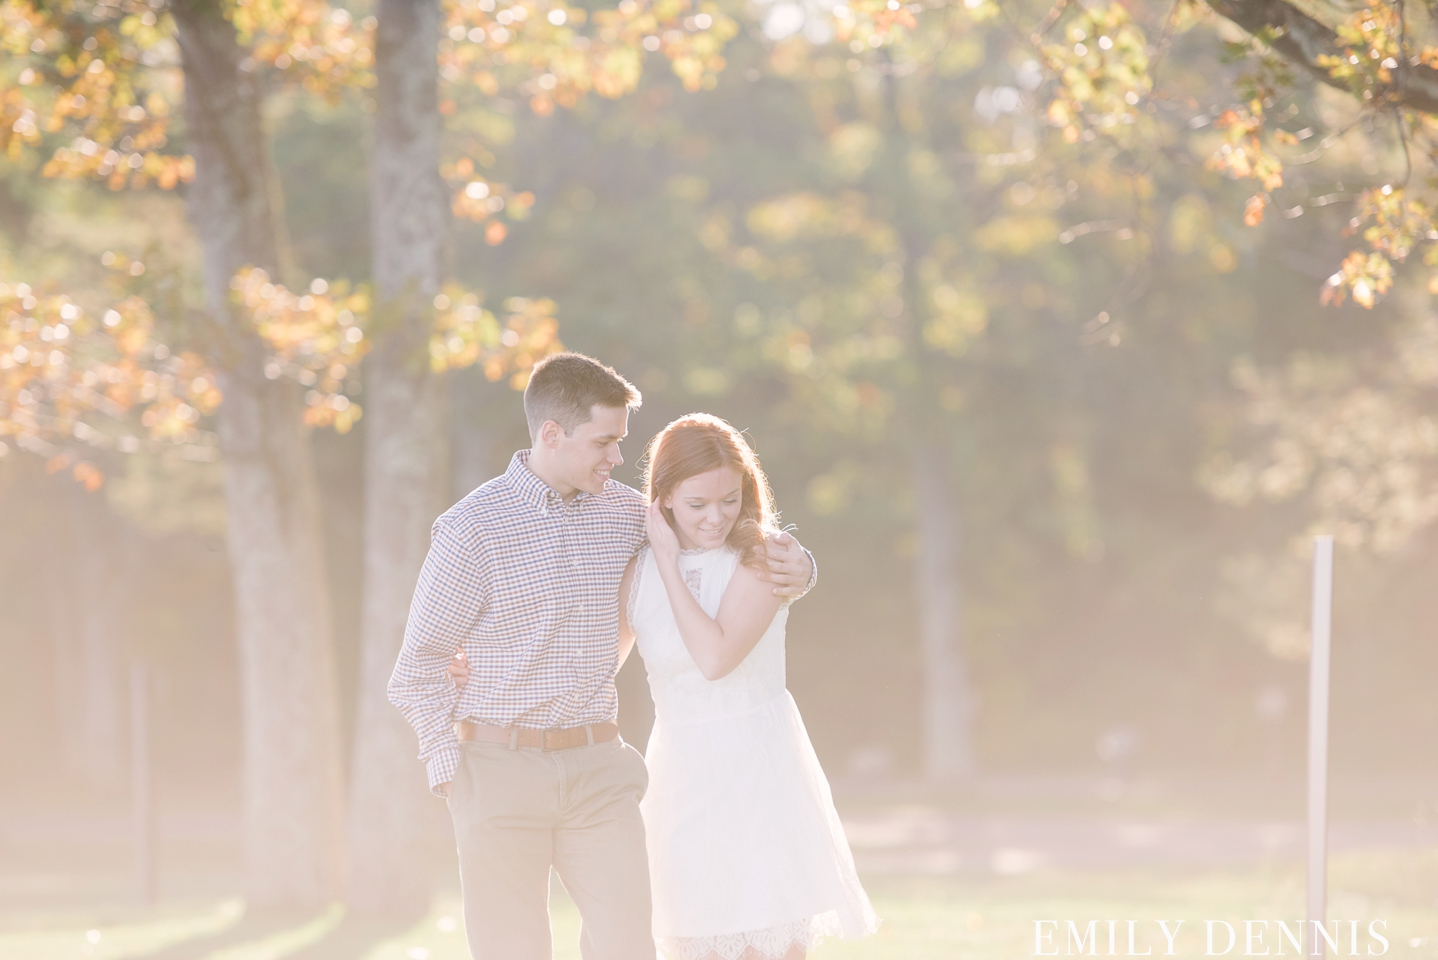 emilydennisphotography_3588